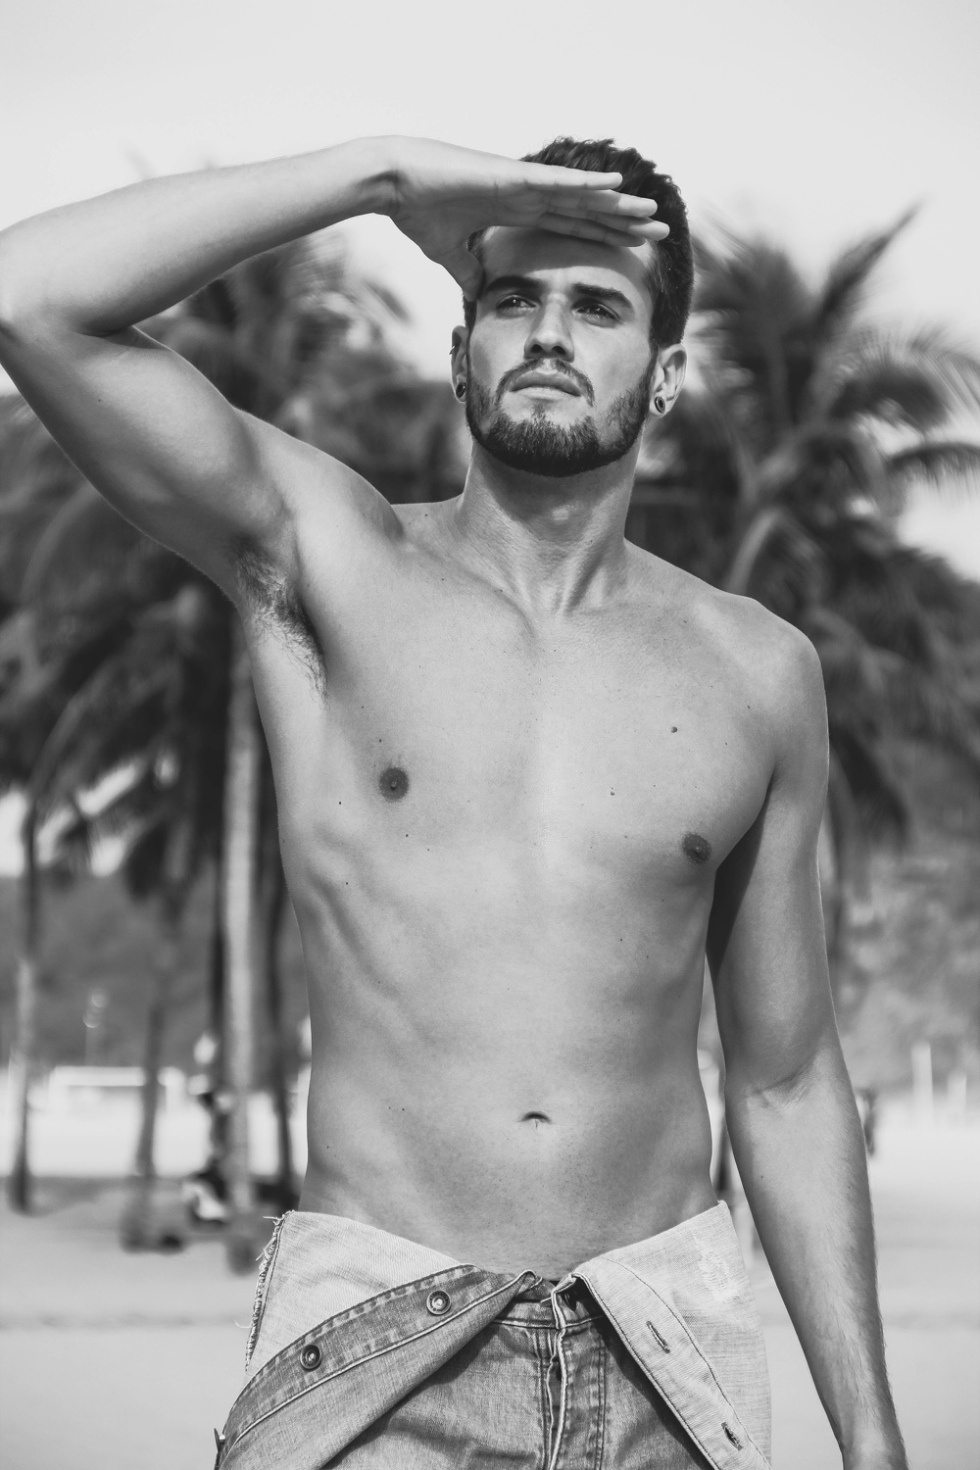 Gorgeous Brazilian fresh face Ricardo Almeida builds up his portfolio with a beautifully captured seaside session from photographer Lucas Oli.